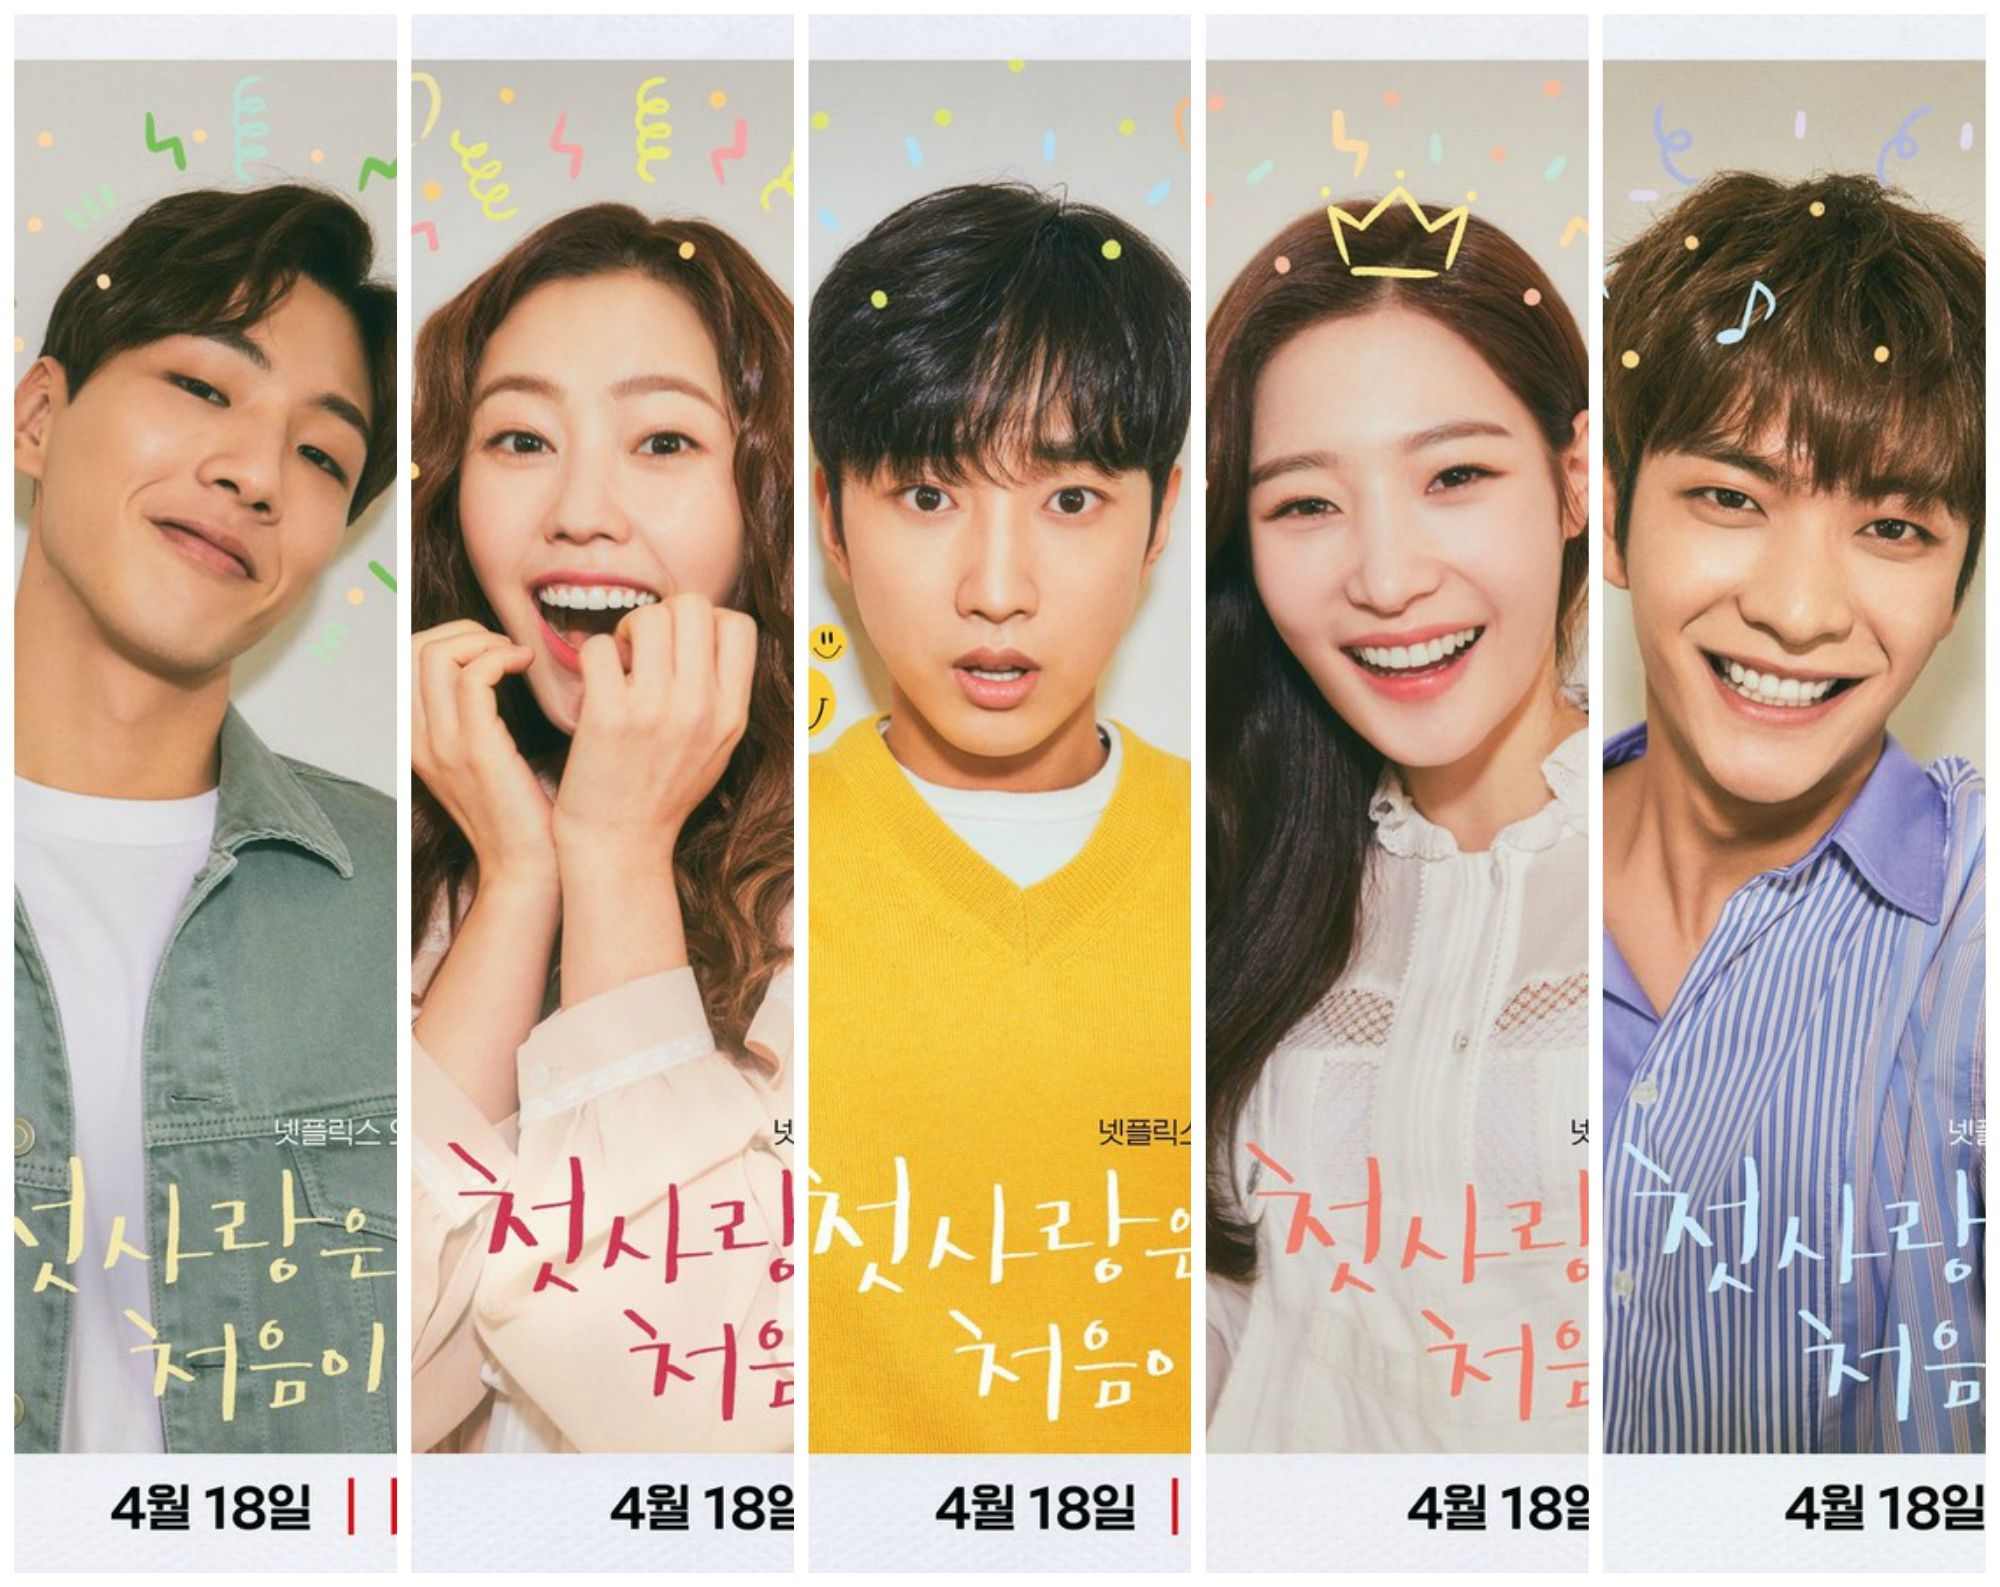 Netflix has released poster characters in 'My First First Love'